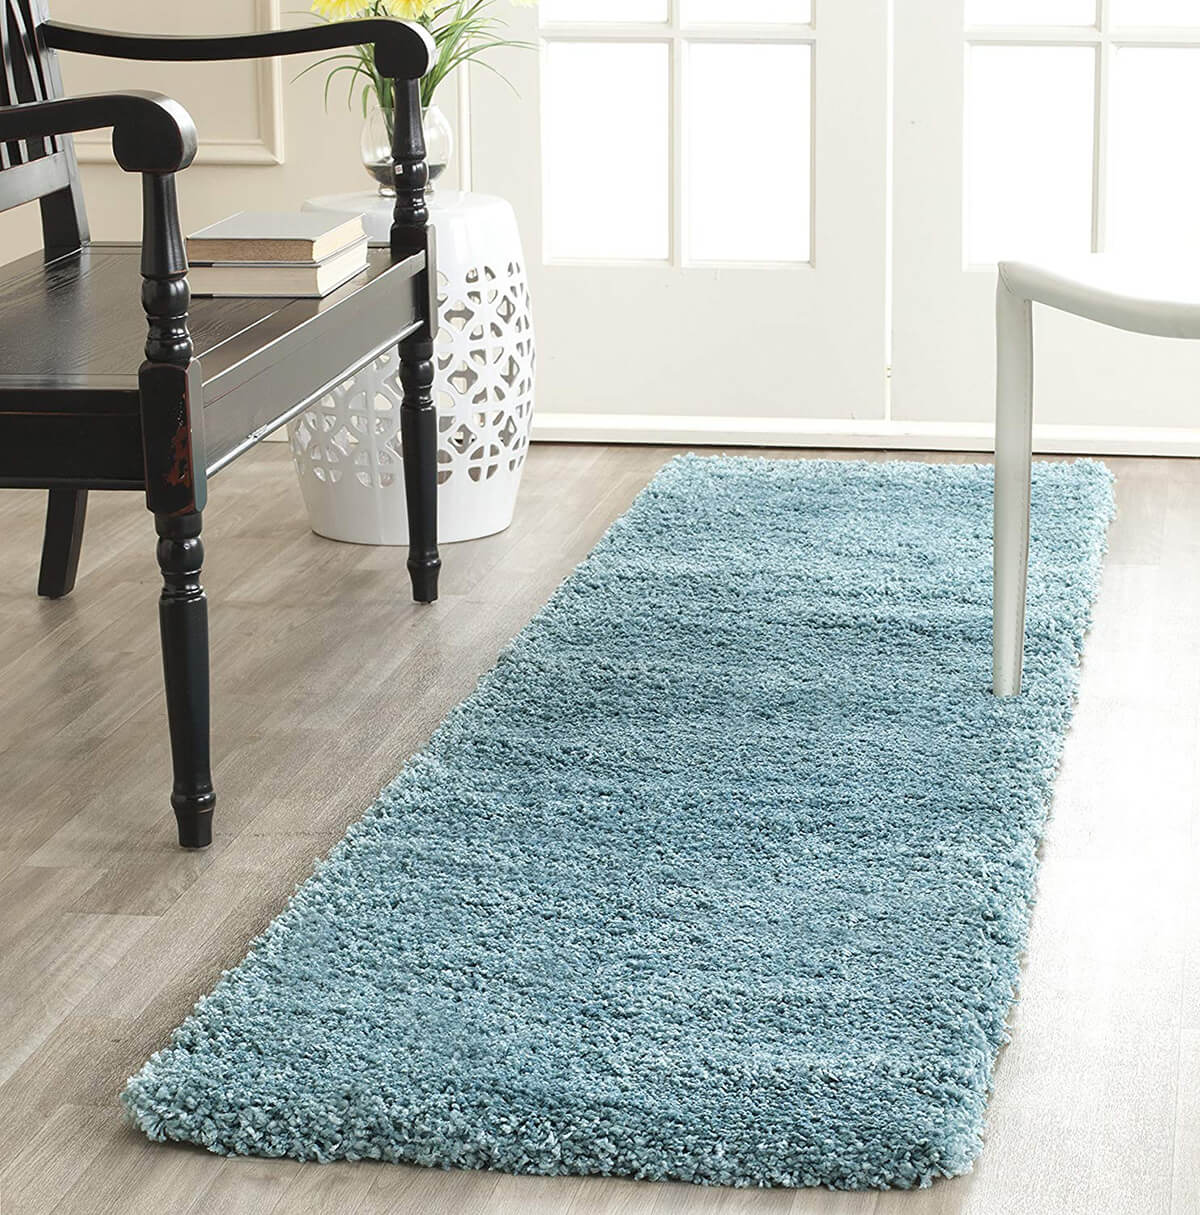 Customers Love this Aqua Rug